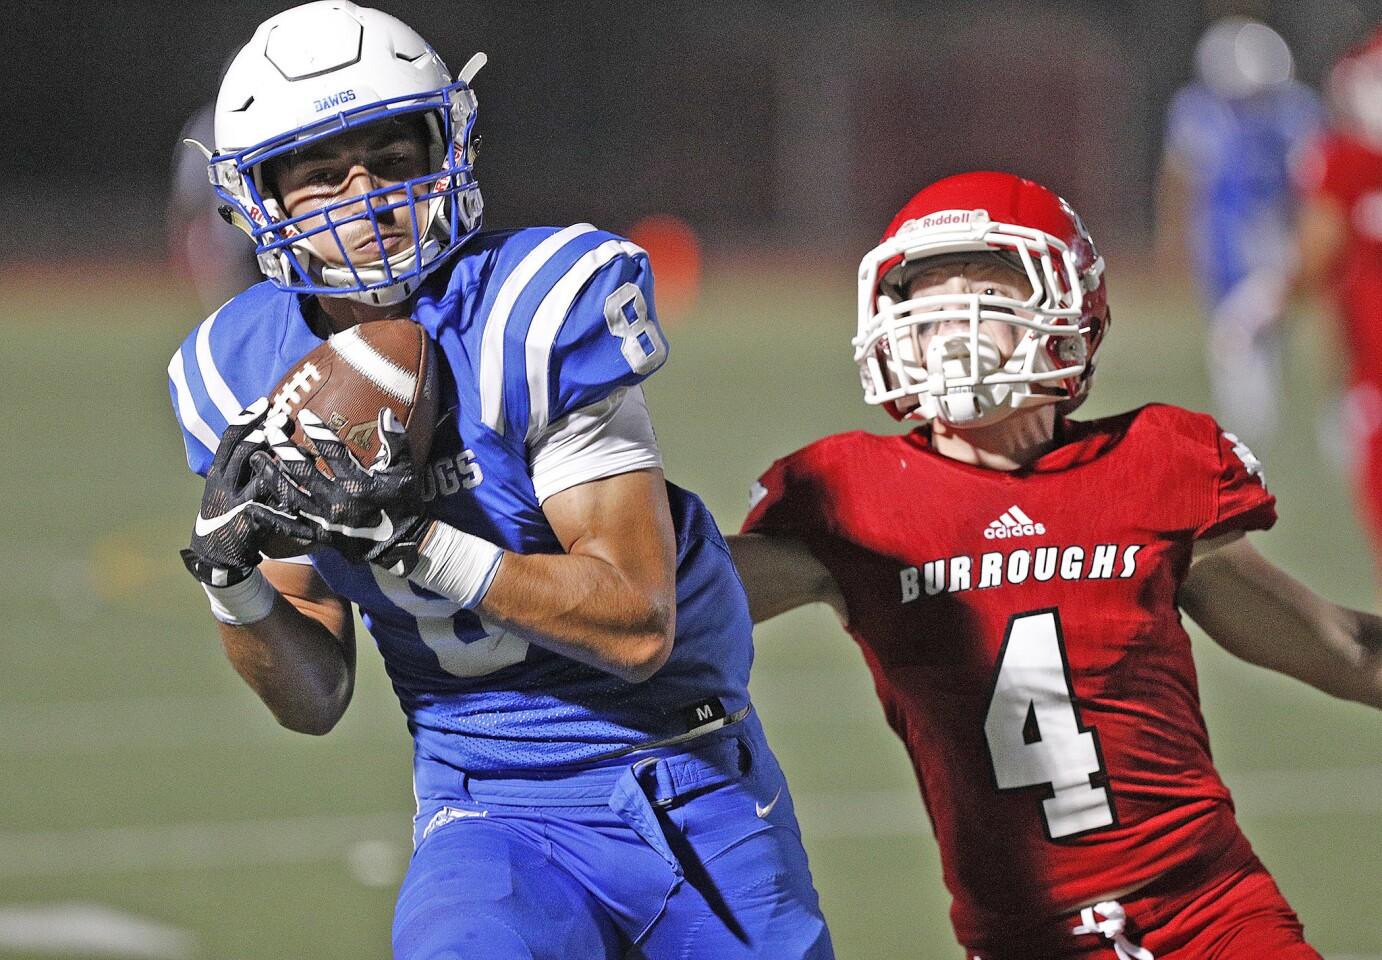 Photo Gallery: Pacific big game rivalry between Burbank and Burroughs football